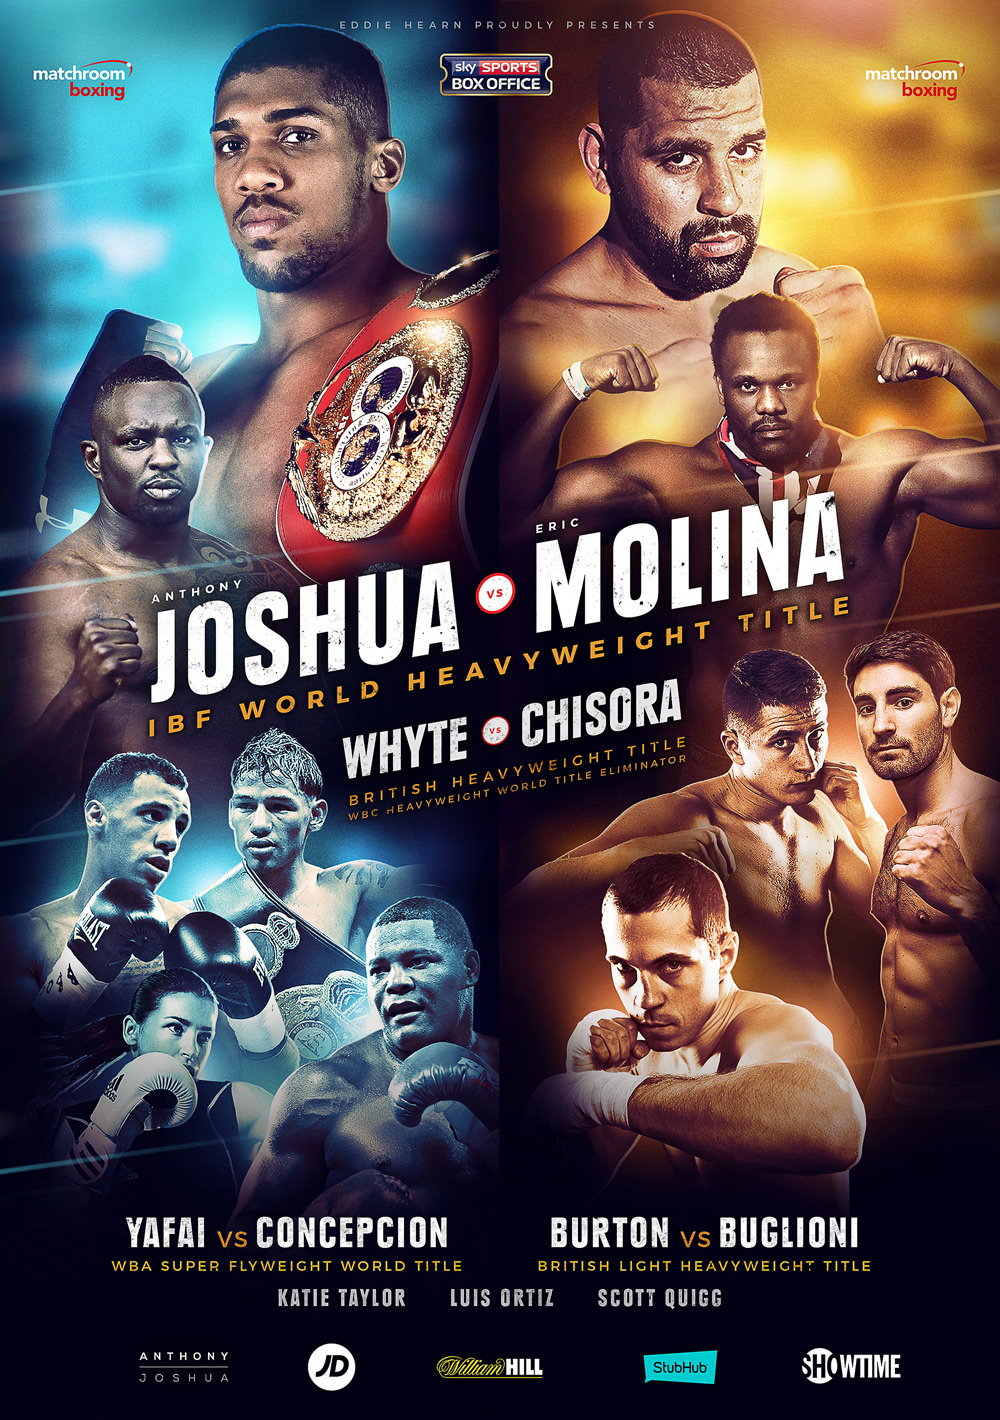 poster for anthony joshua's ibf heavyweight title defence against eric molina